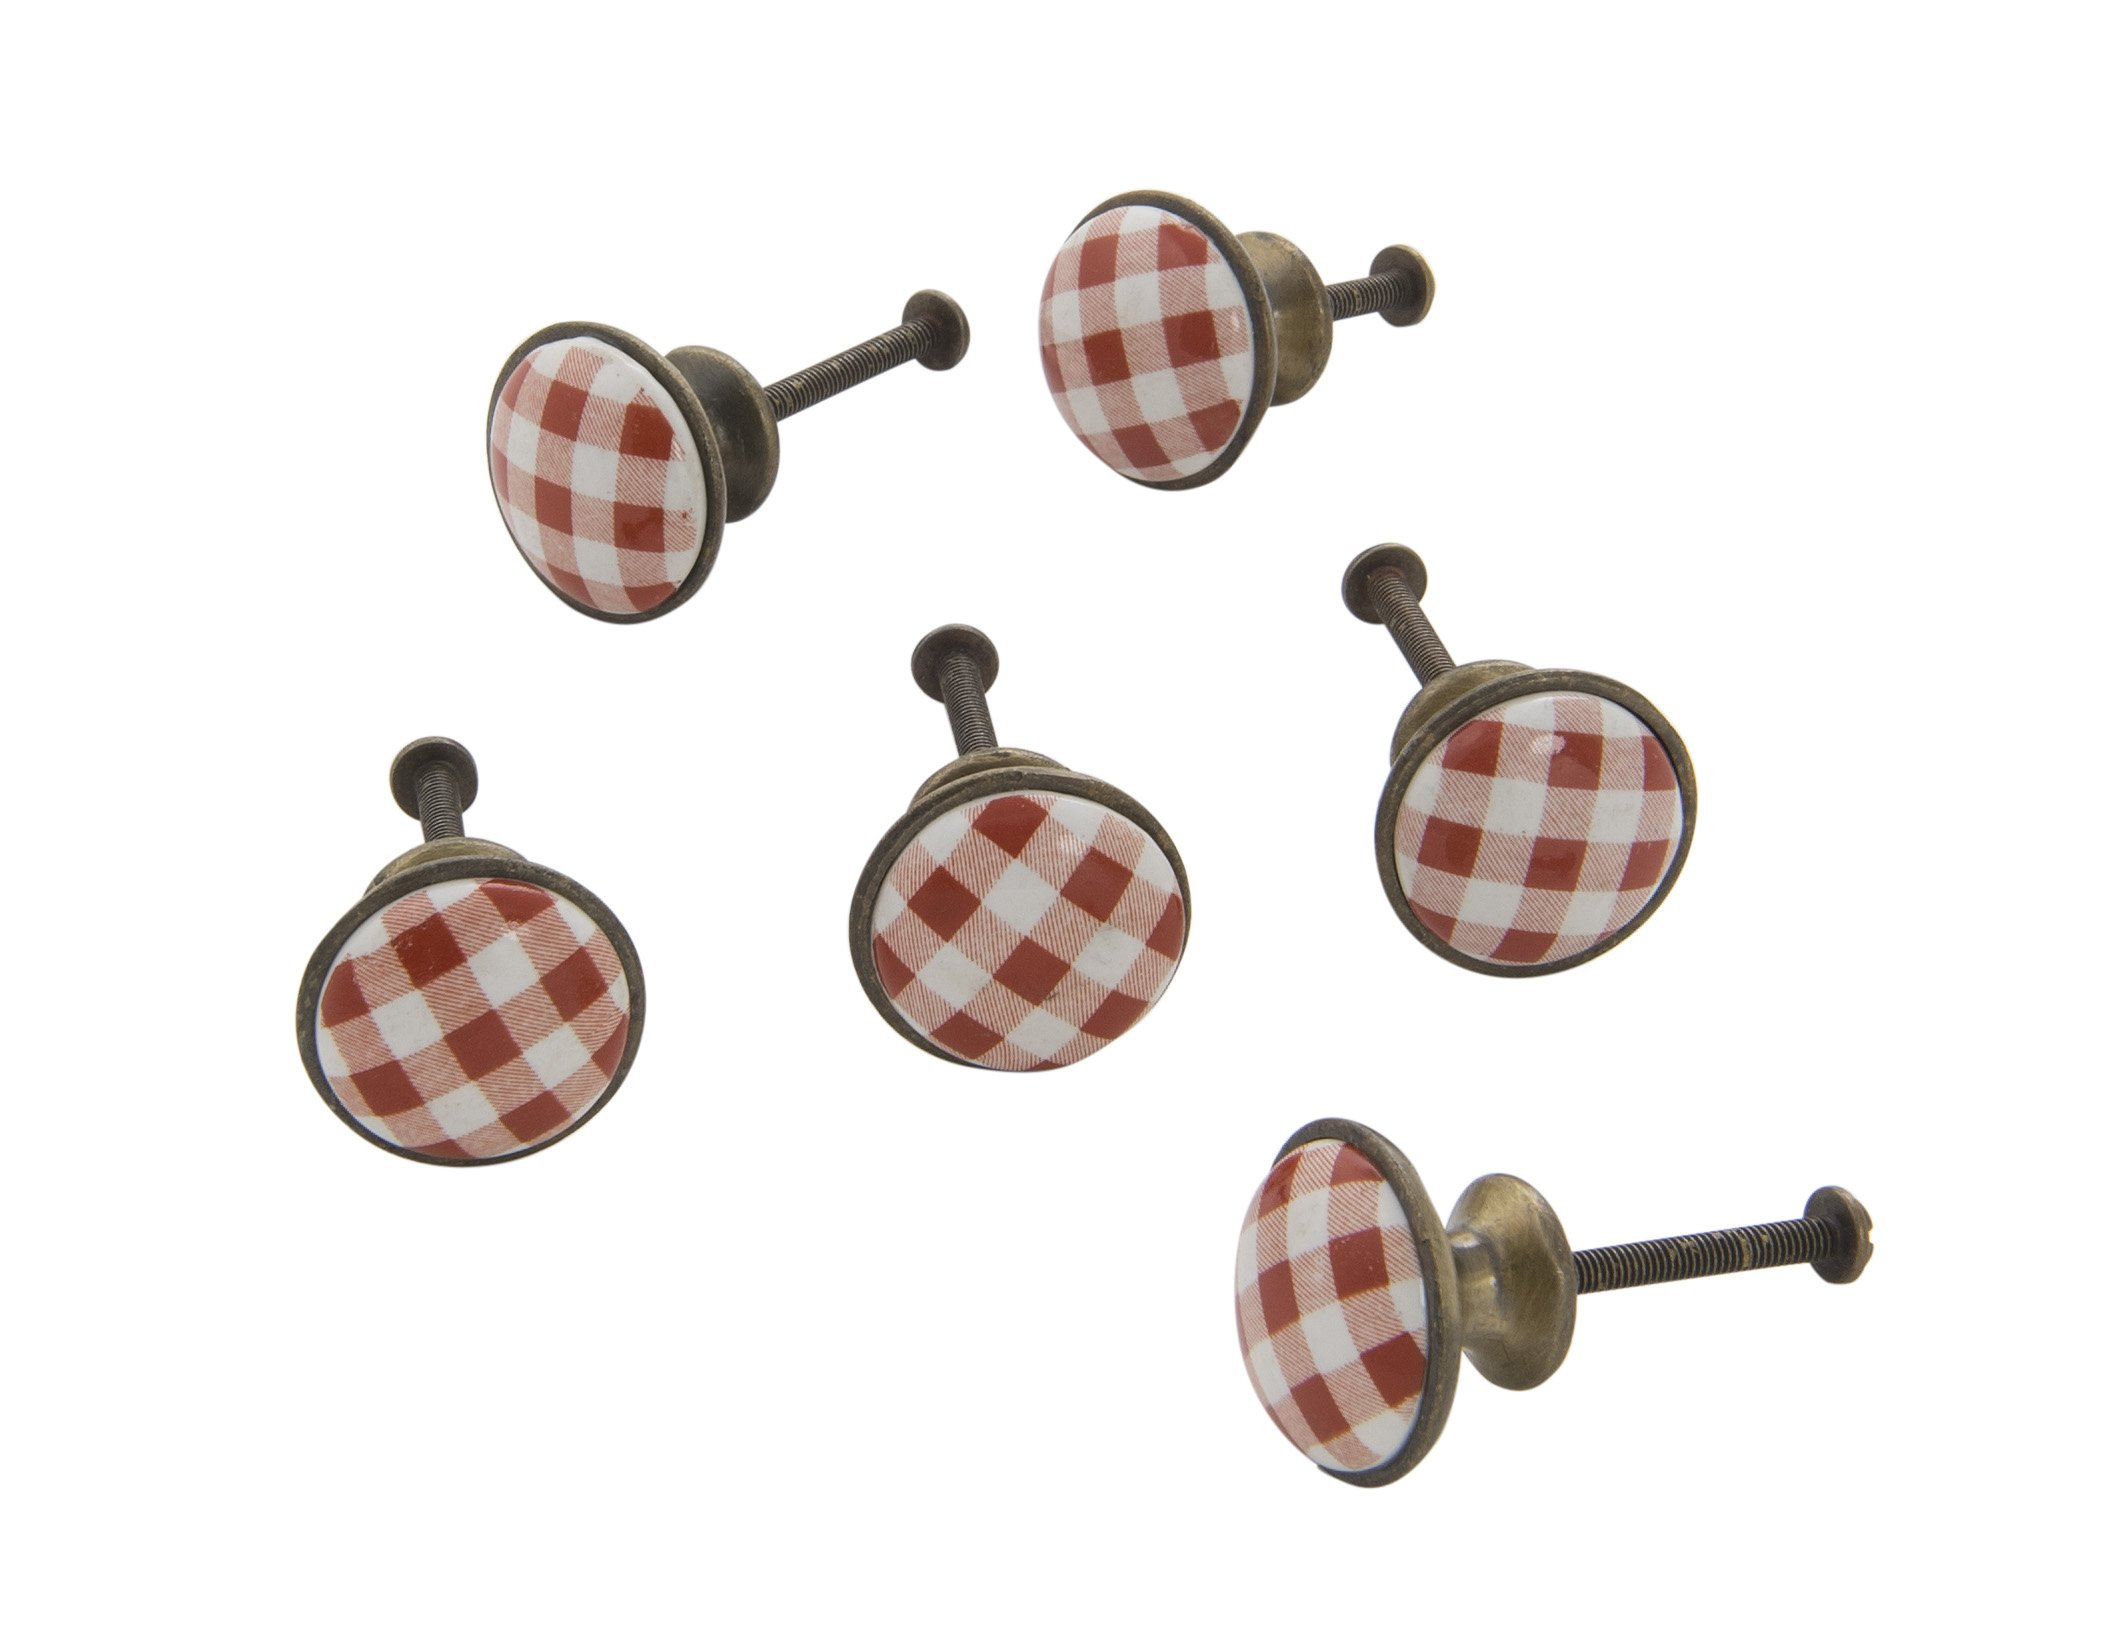 Dritz Home 47055A Ceramic & Metal Red Gingham Knob Handcrafted Knobs for Cabinets & Drawers